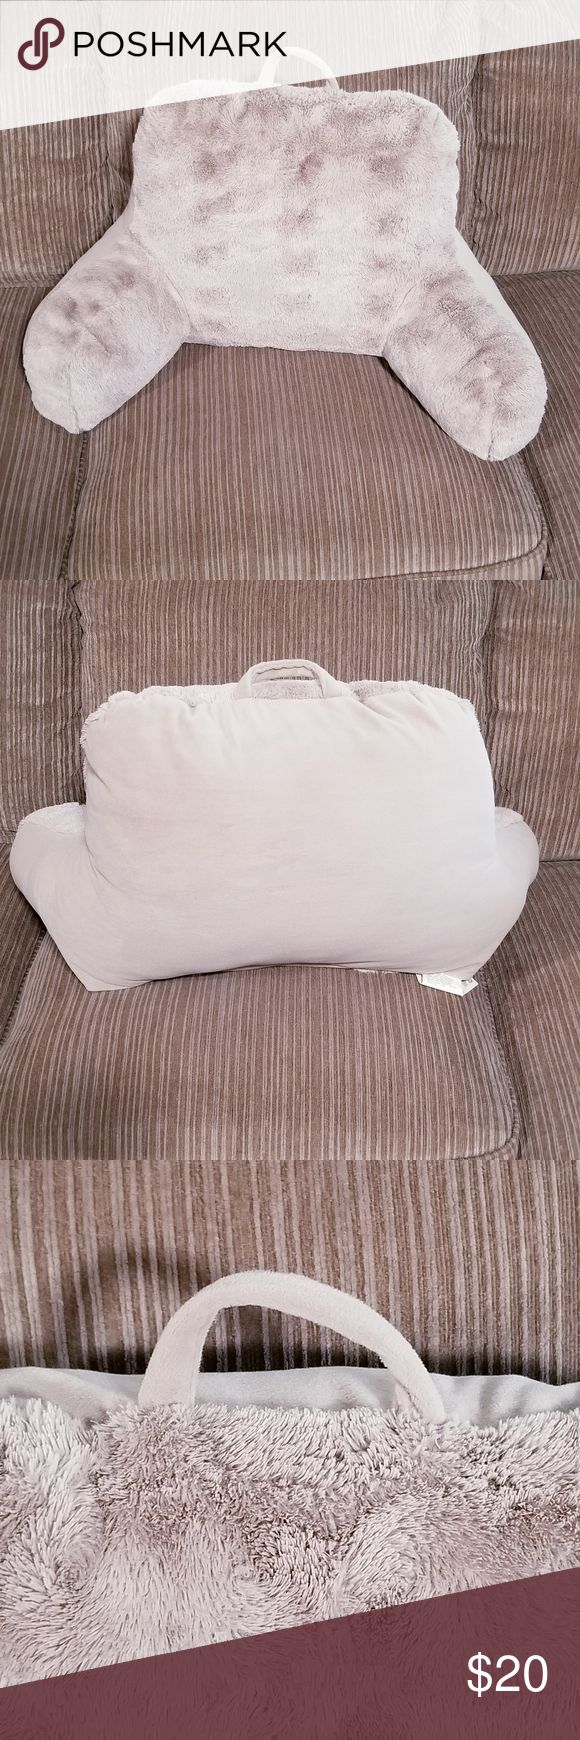 Bed Rest Pillow Textured * Color Taupe * Cover Front 100